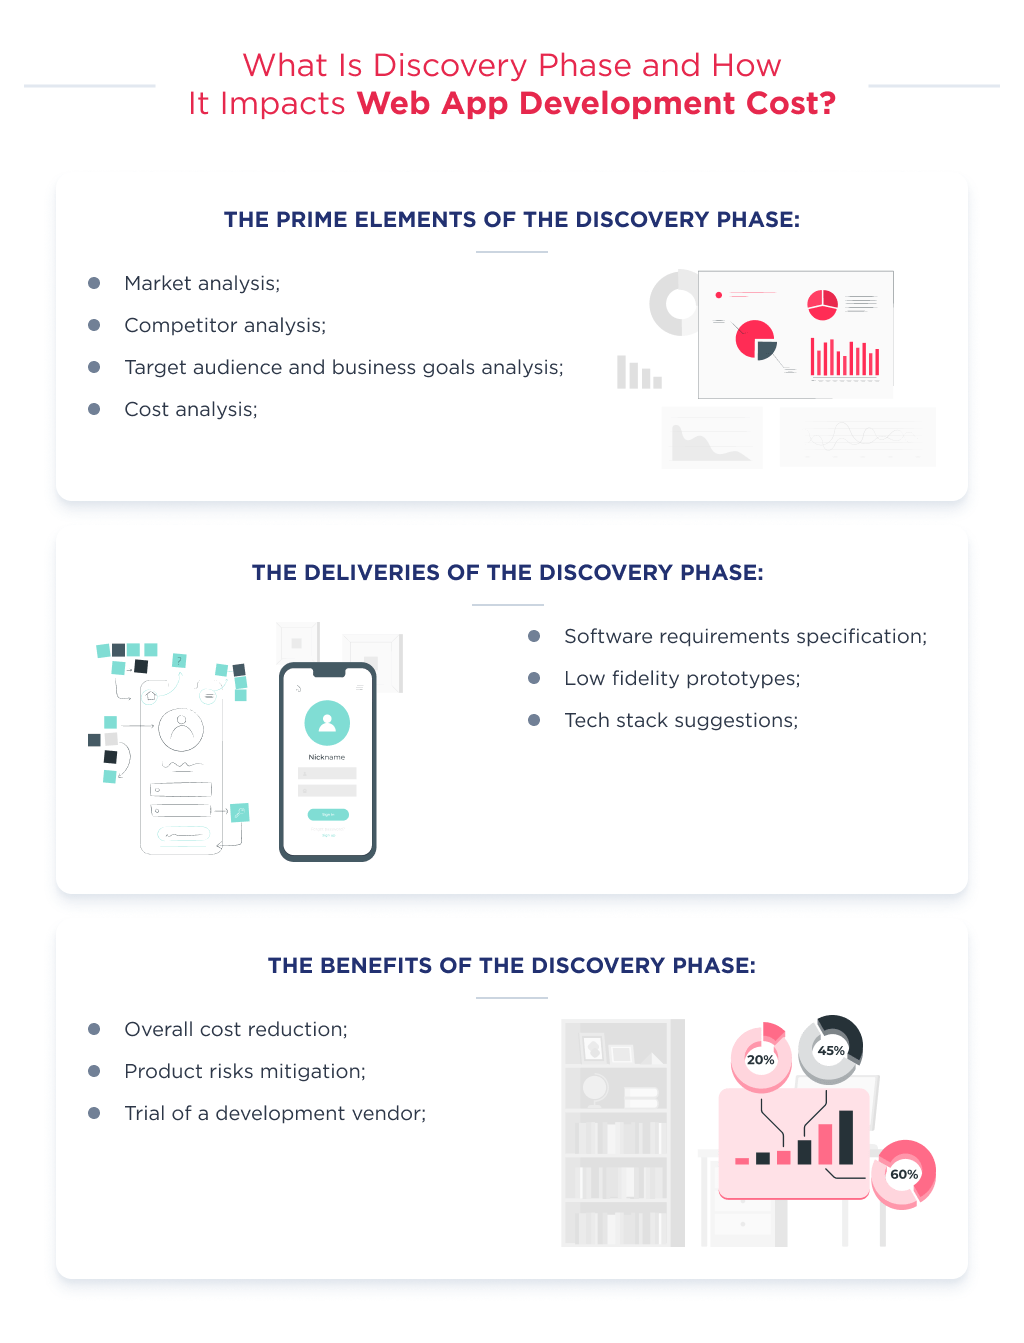 The discovery phase helps to define custom web application development cost in a budget-wise way